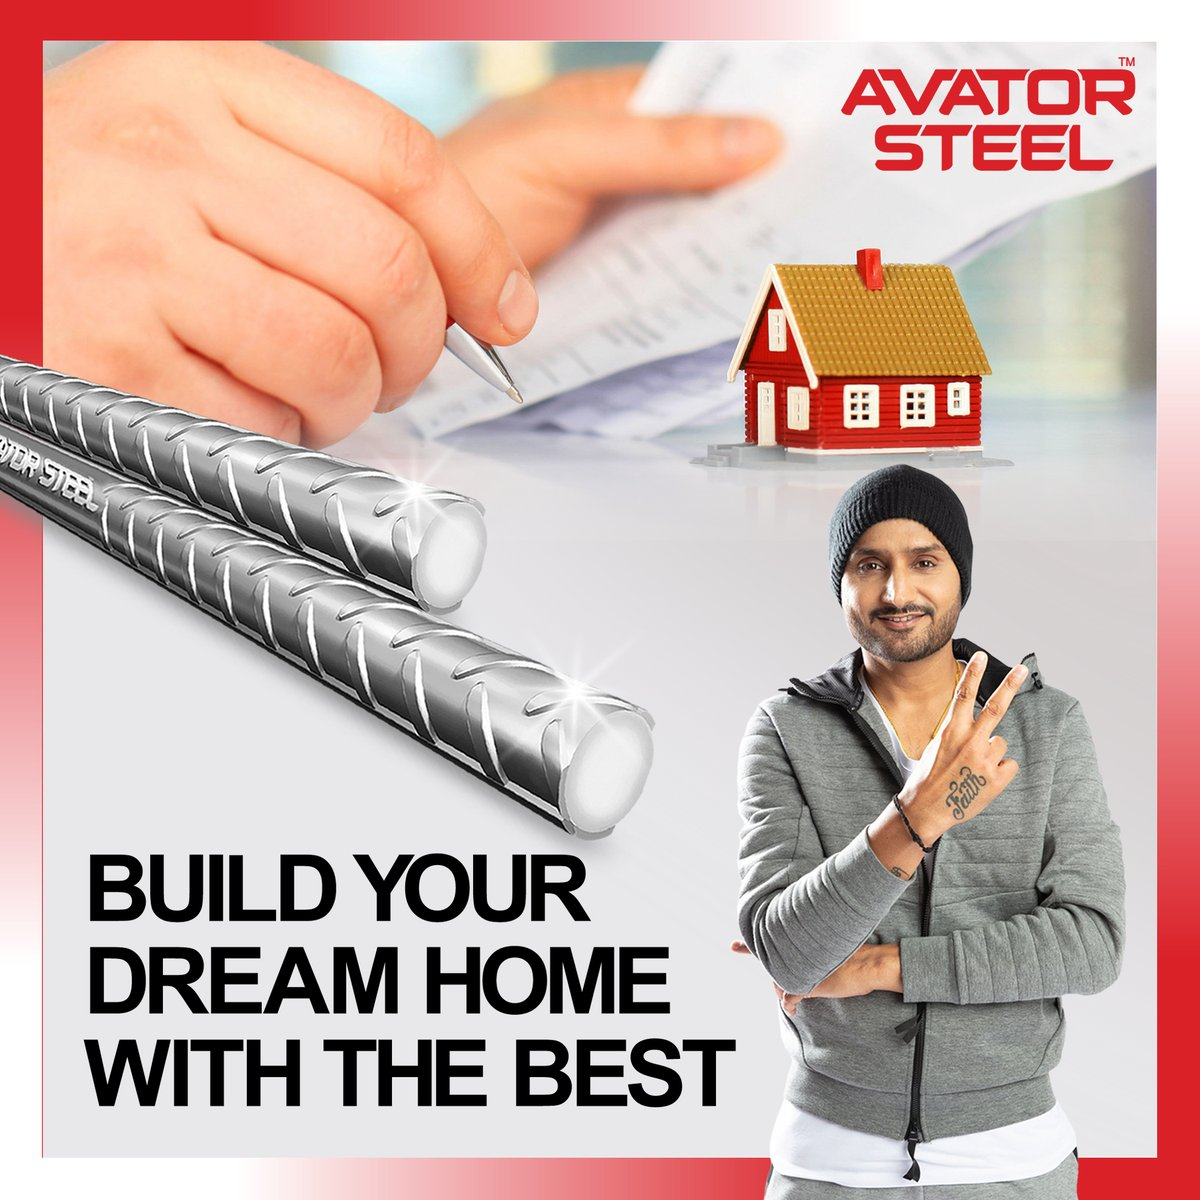 Made with the latest technology, #AvatorSteel gives your home the strength to stand strong for many years.   #HarbhajanSingh #RustProof #EarthquakeProof  @harbhajan_singh